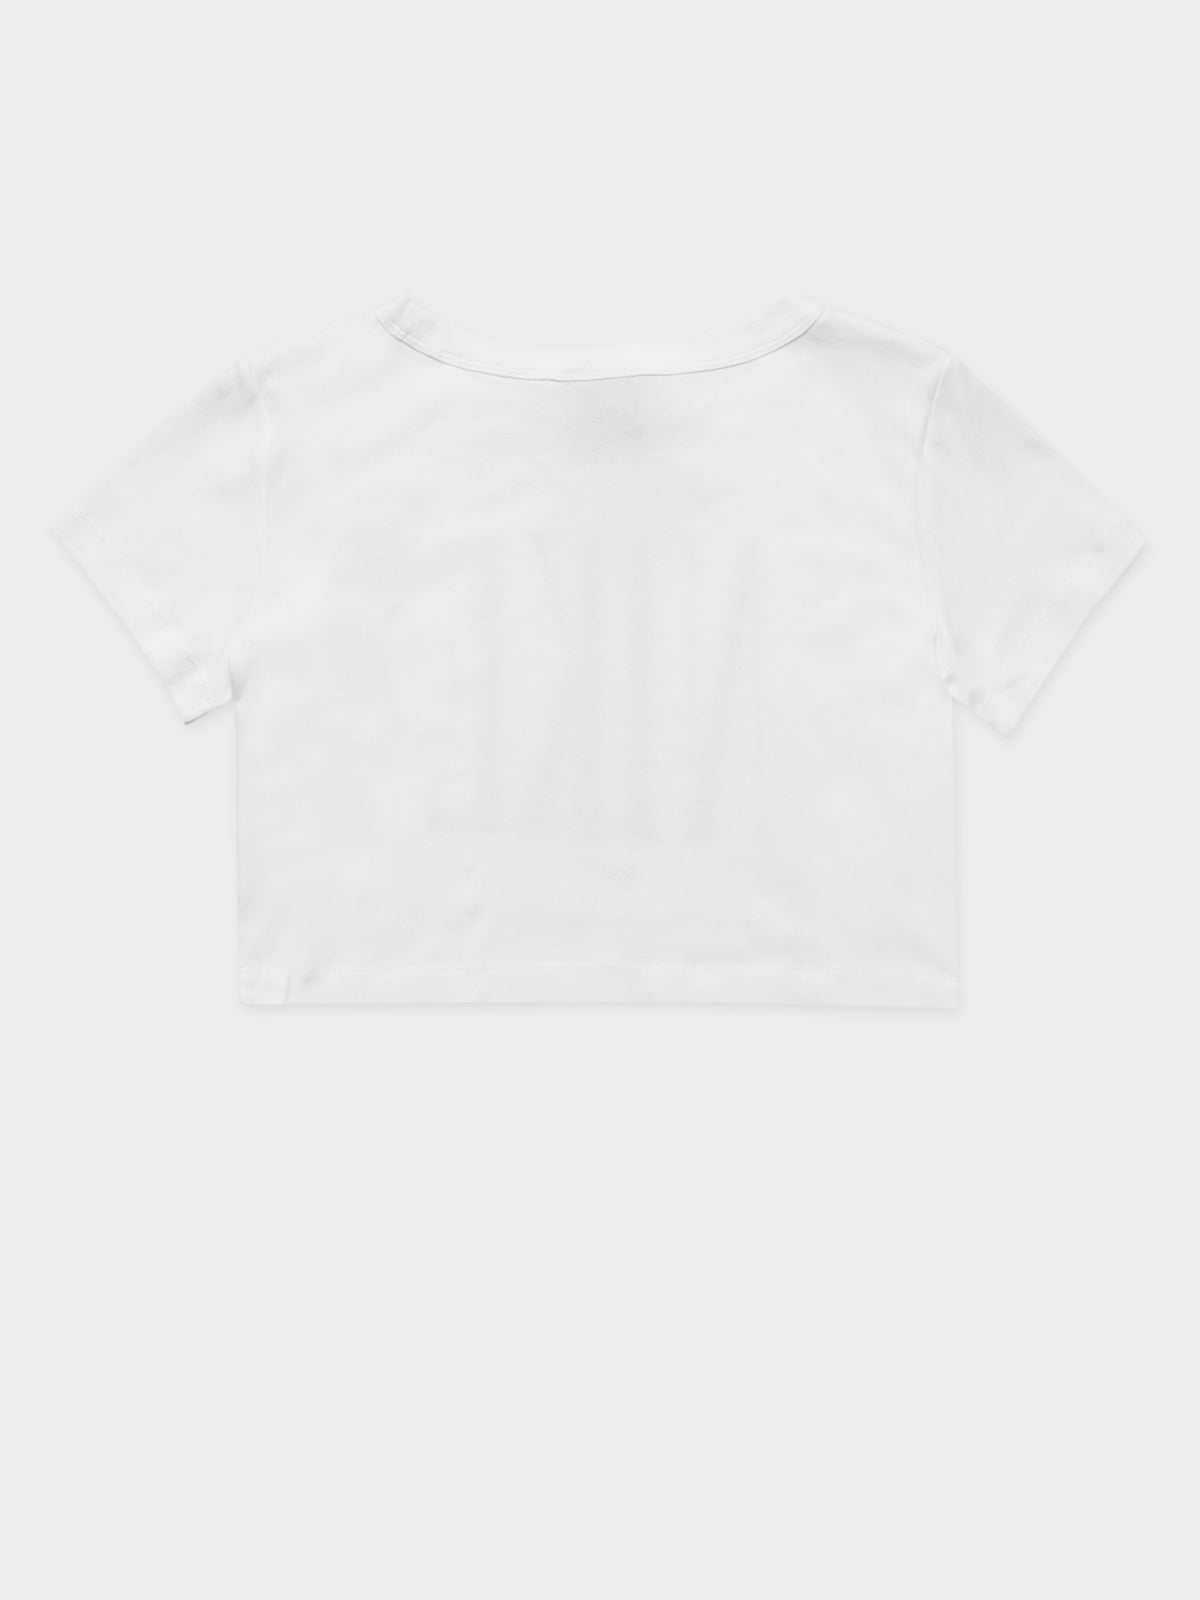 Sportswear Cropped T-Shirt in White